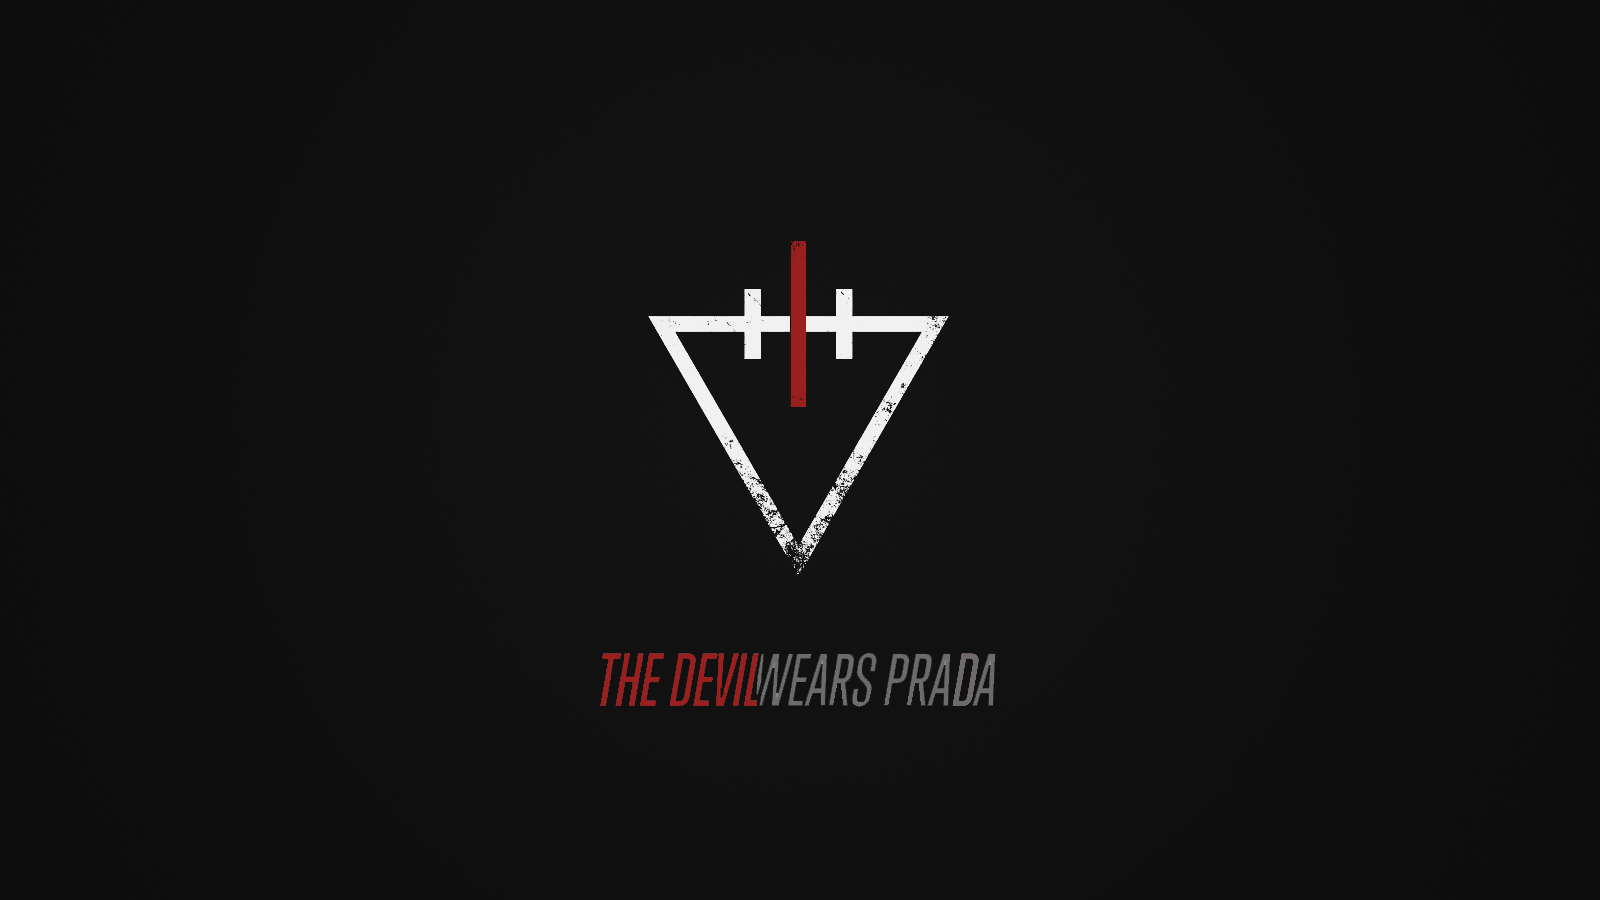 Related Wallpapers. The Devil Wears Prada ...